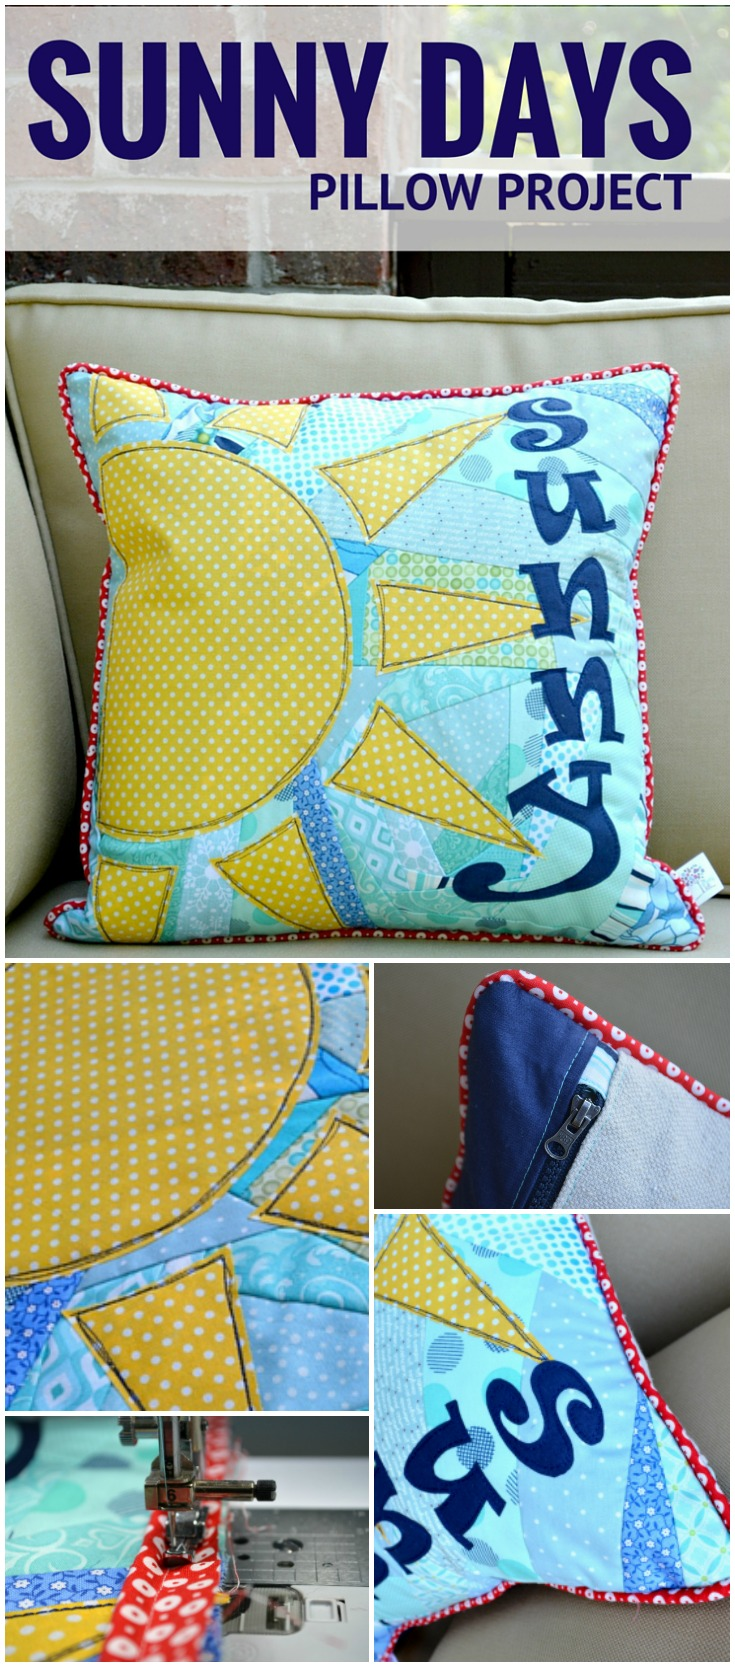 Love this scrappy pillow! It's the perfect sewing pattern to clean out my stash. The instructions are easy to follow and the applique design is so cute.